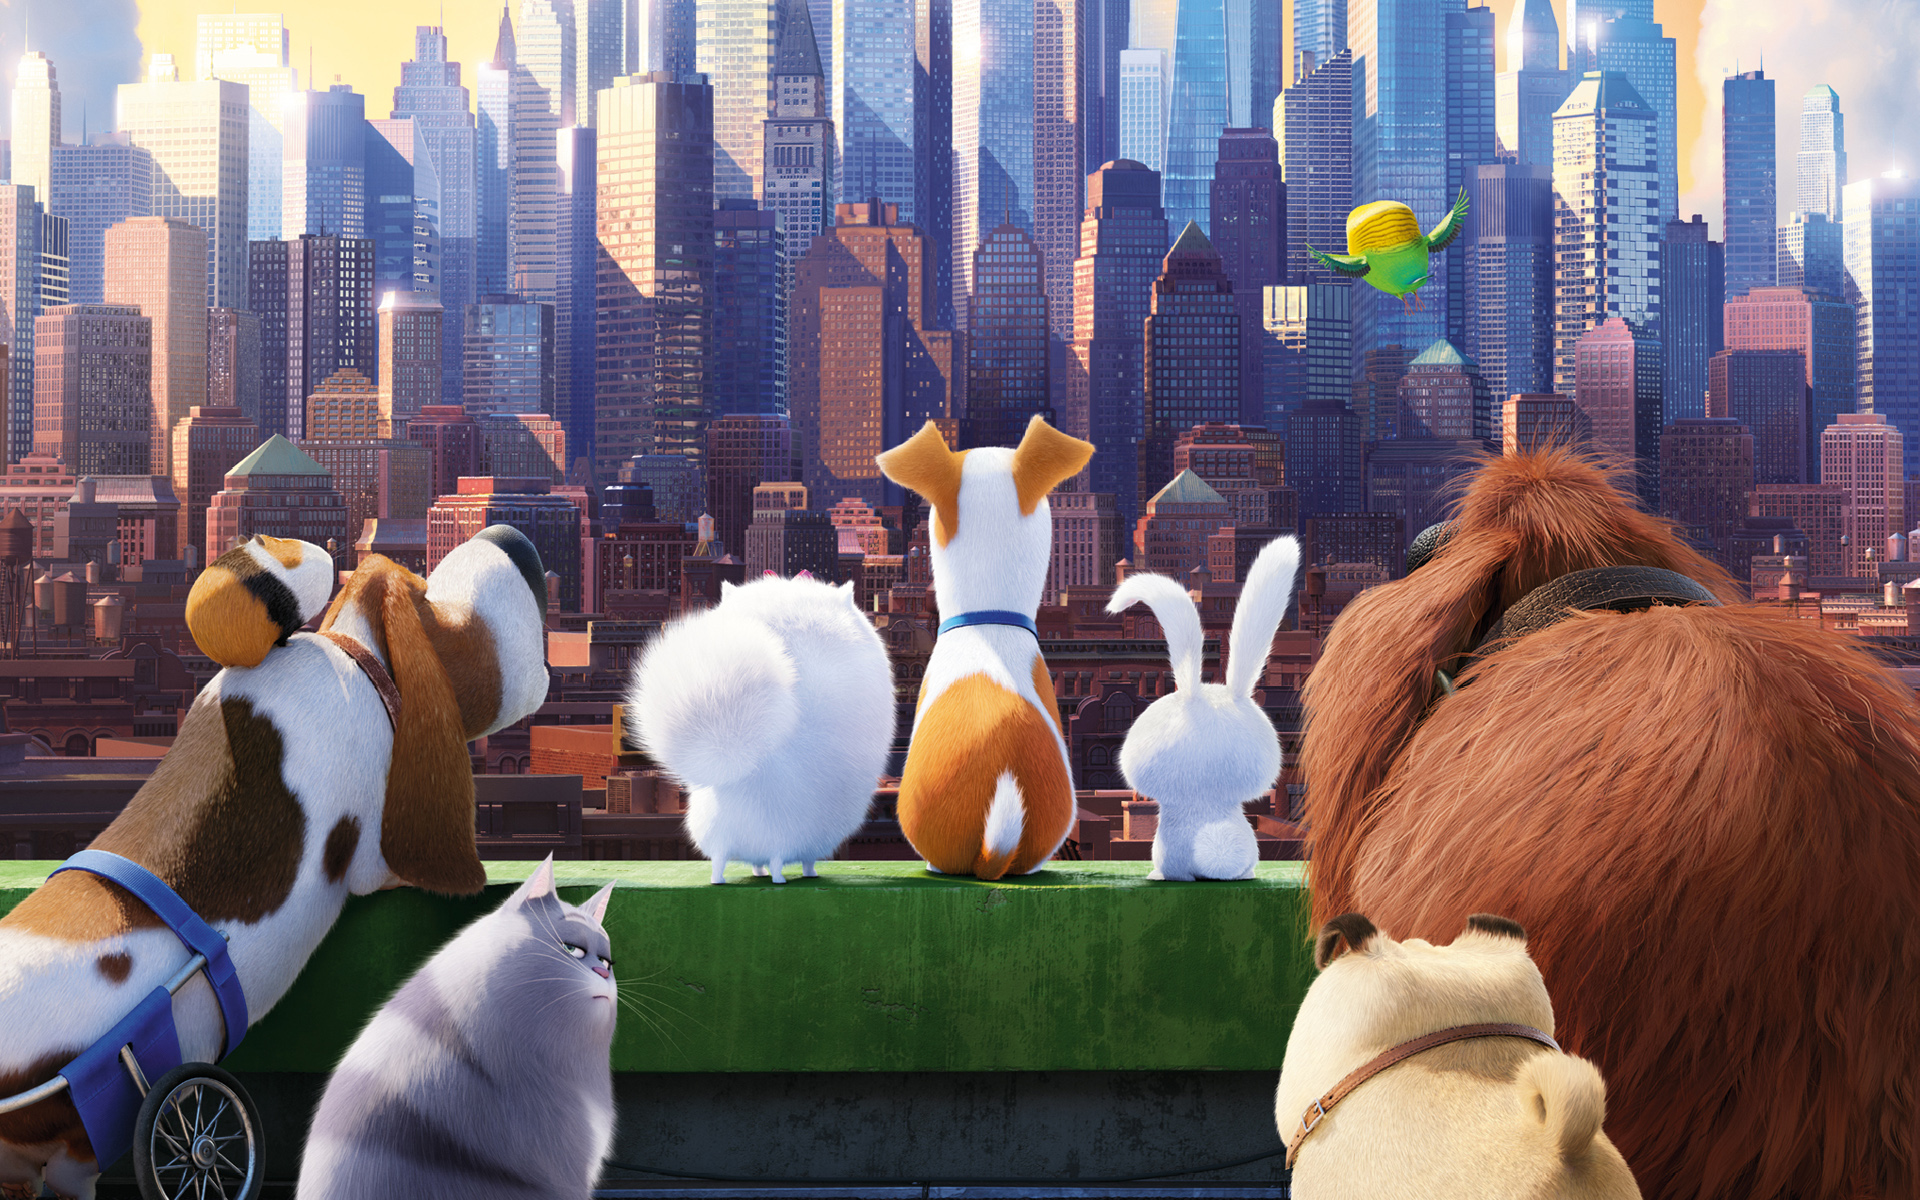 Cute New York Desktop Wallpaper Review The Secret Life Of Pets Is The Pick Of The Liter